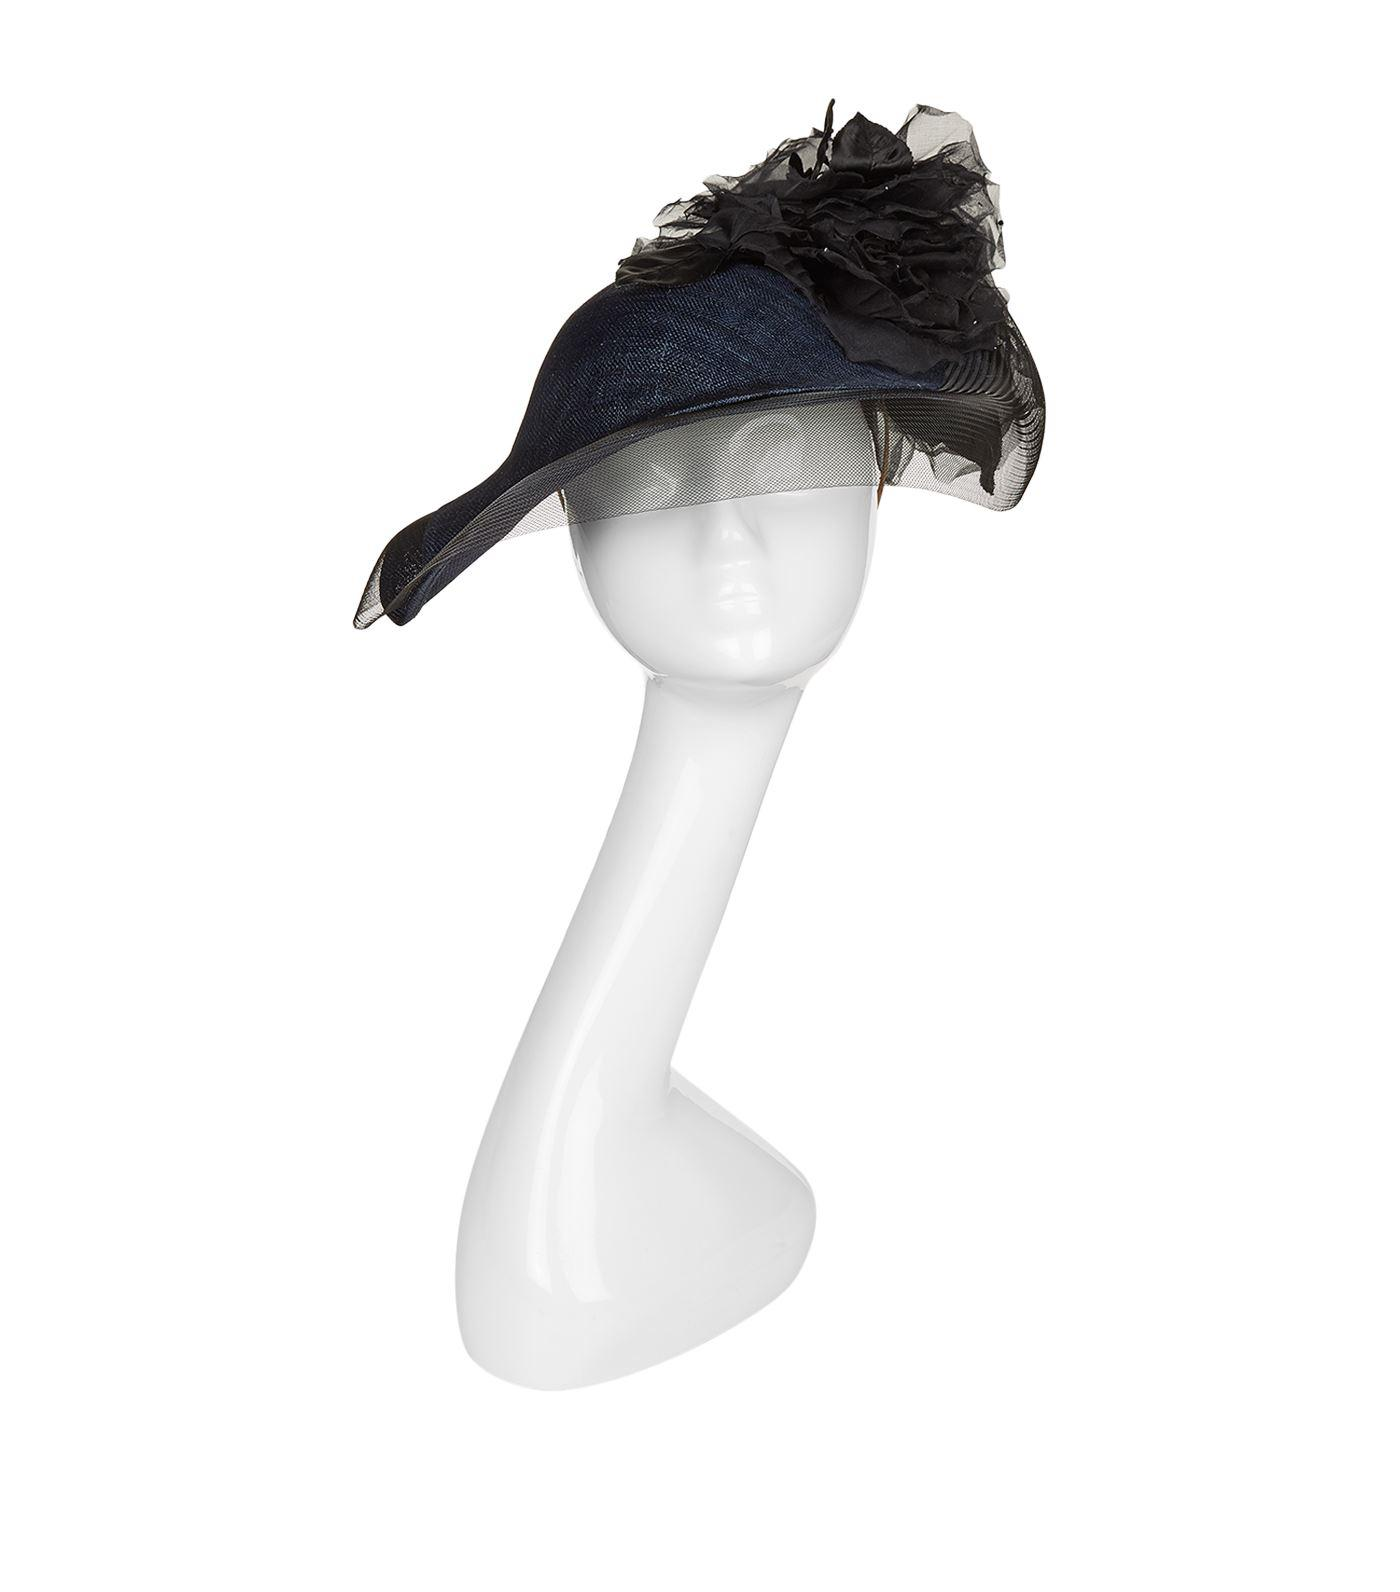 Lyst - Philip Treacy Rosette Aymmetric Headpiece in Blue 1fb11650ecfe